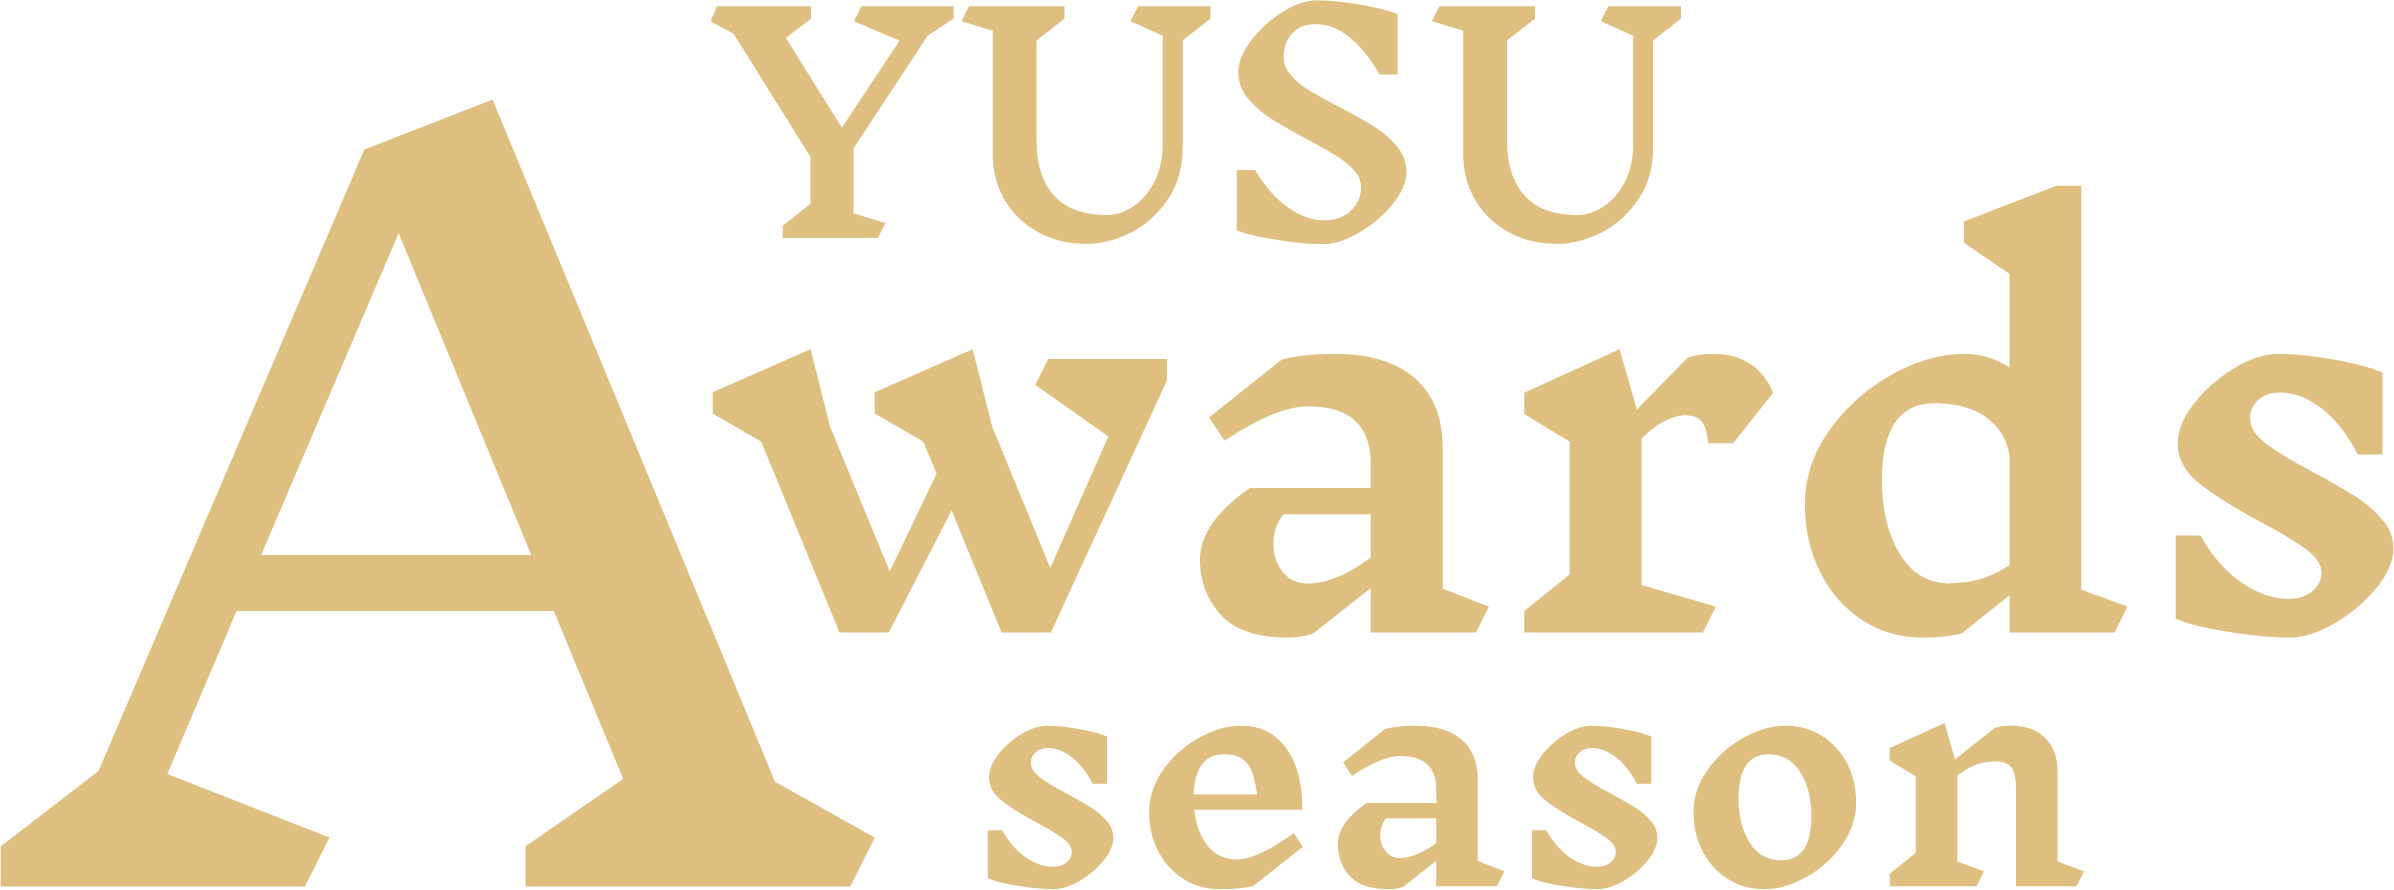 YUSU awards season